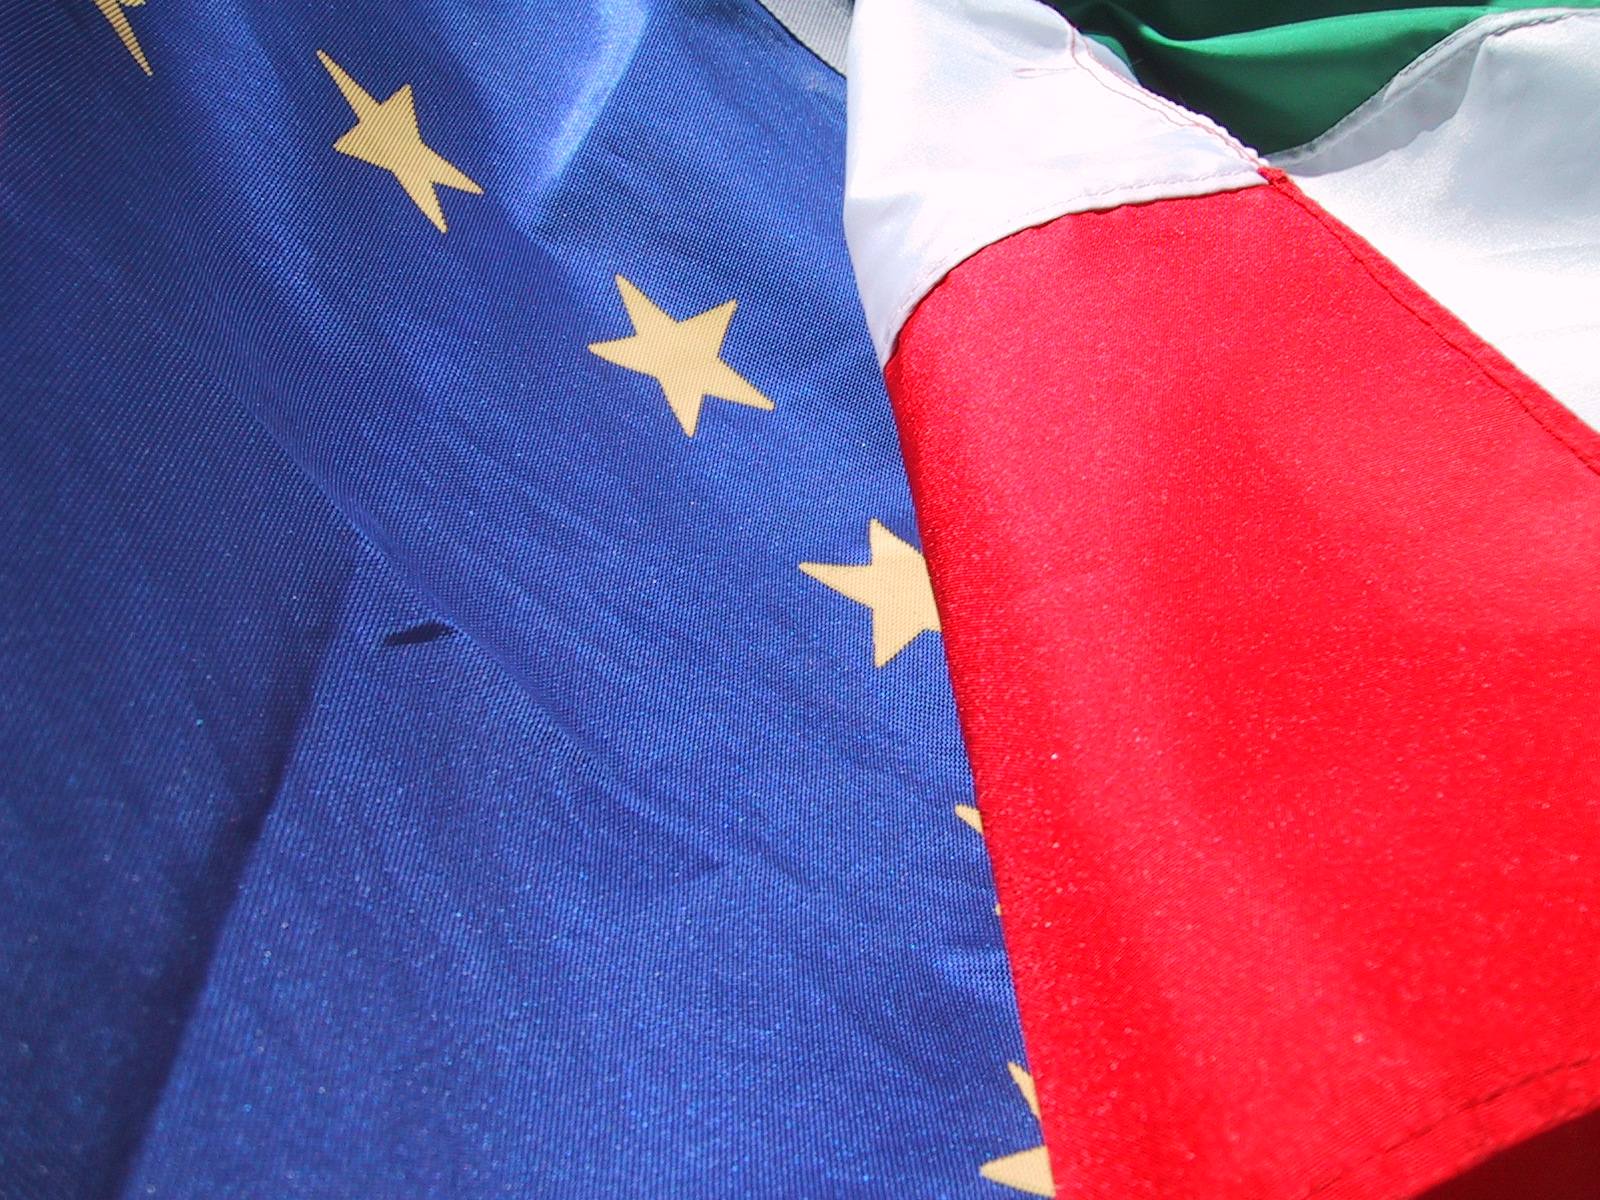 Italian Populists Seal Coalition Pact in Challenge to EU Elites